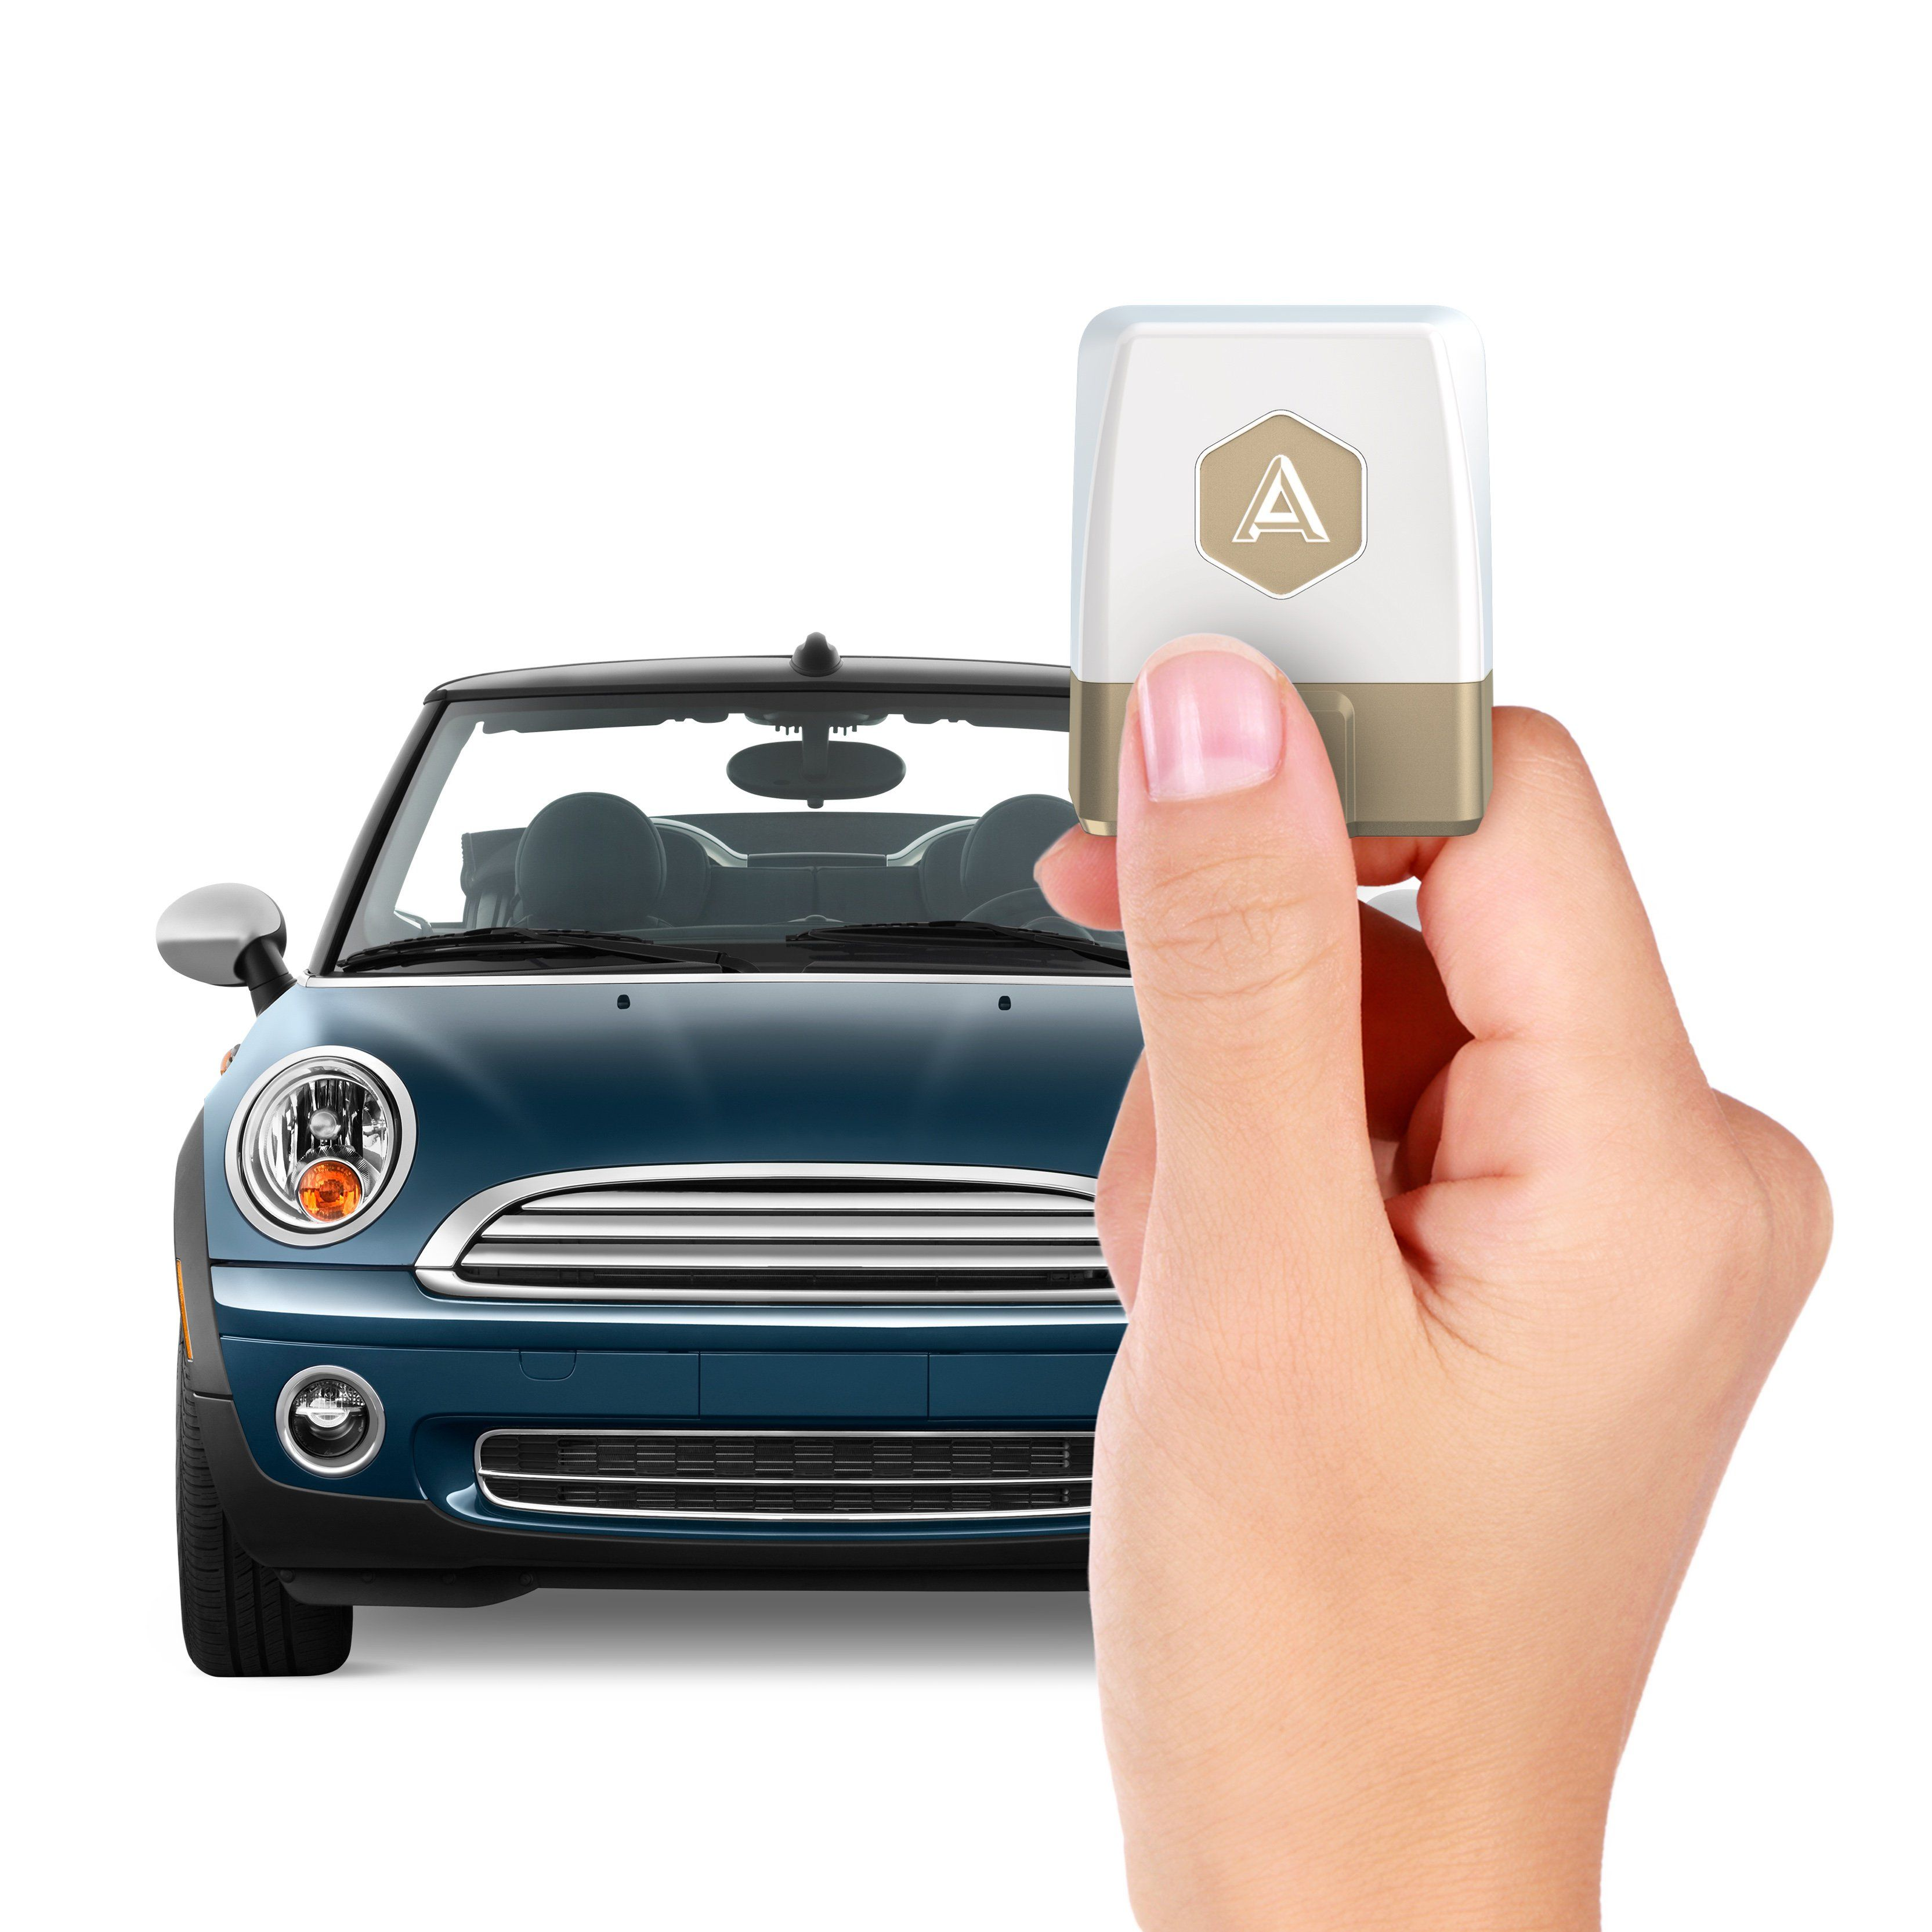 SirusXM Buys Car Accessory Maker Automatic for 100